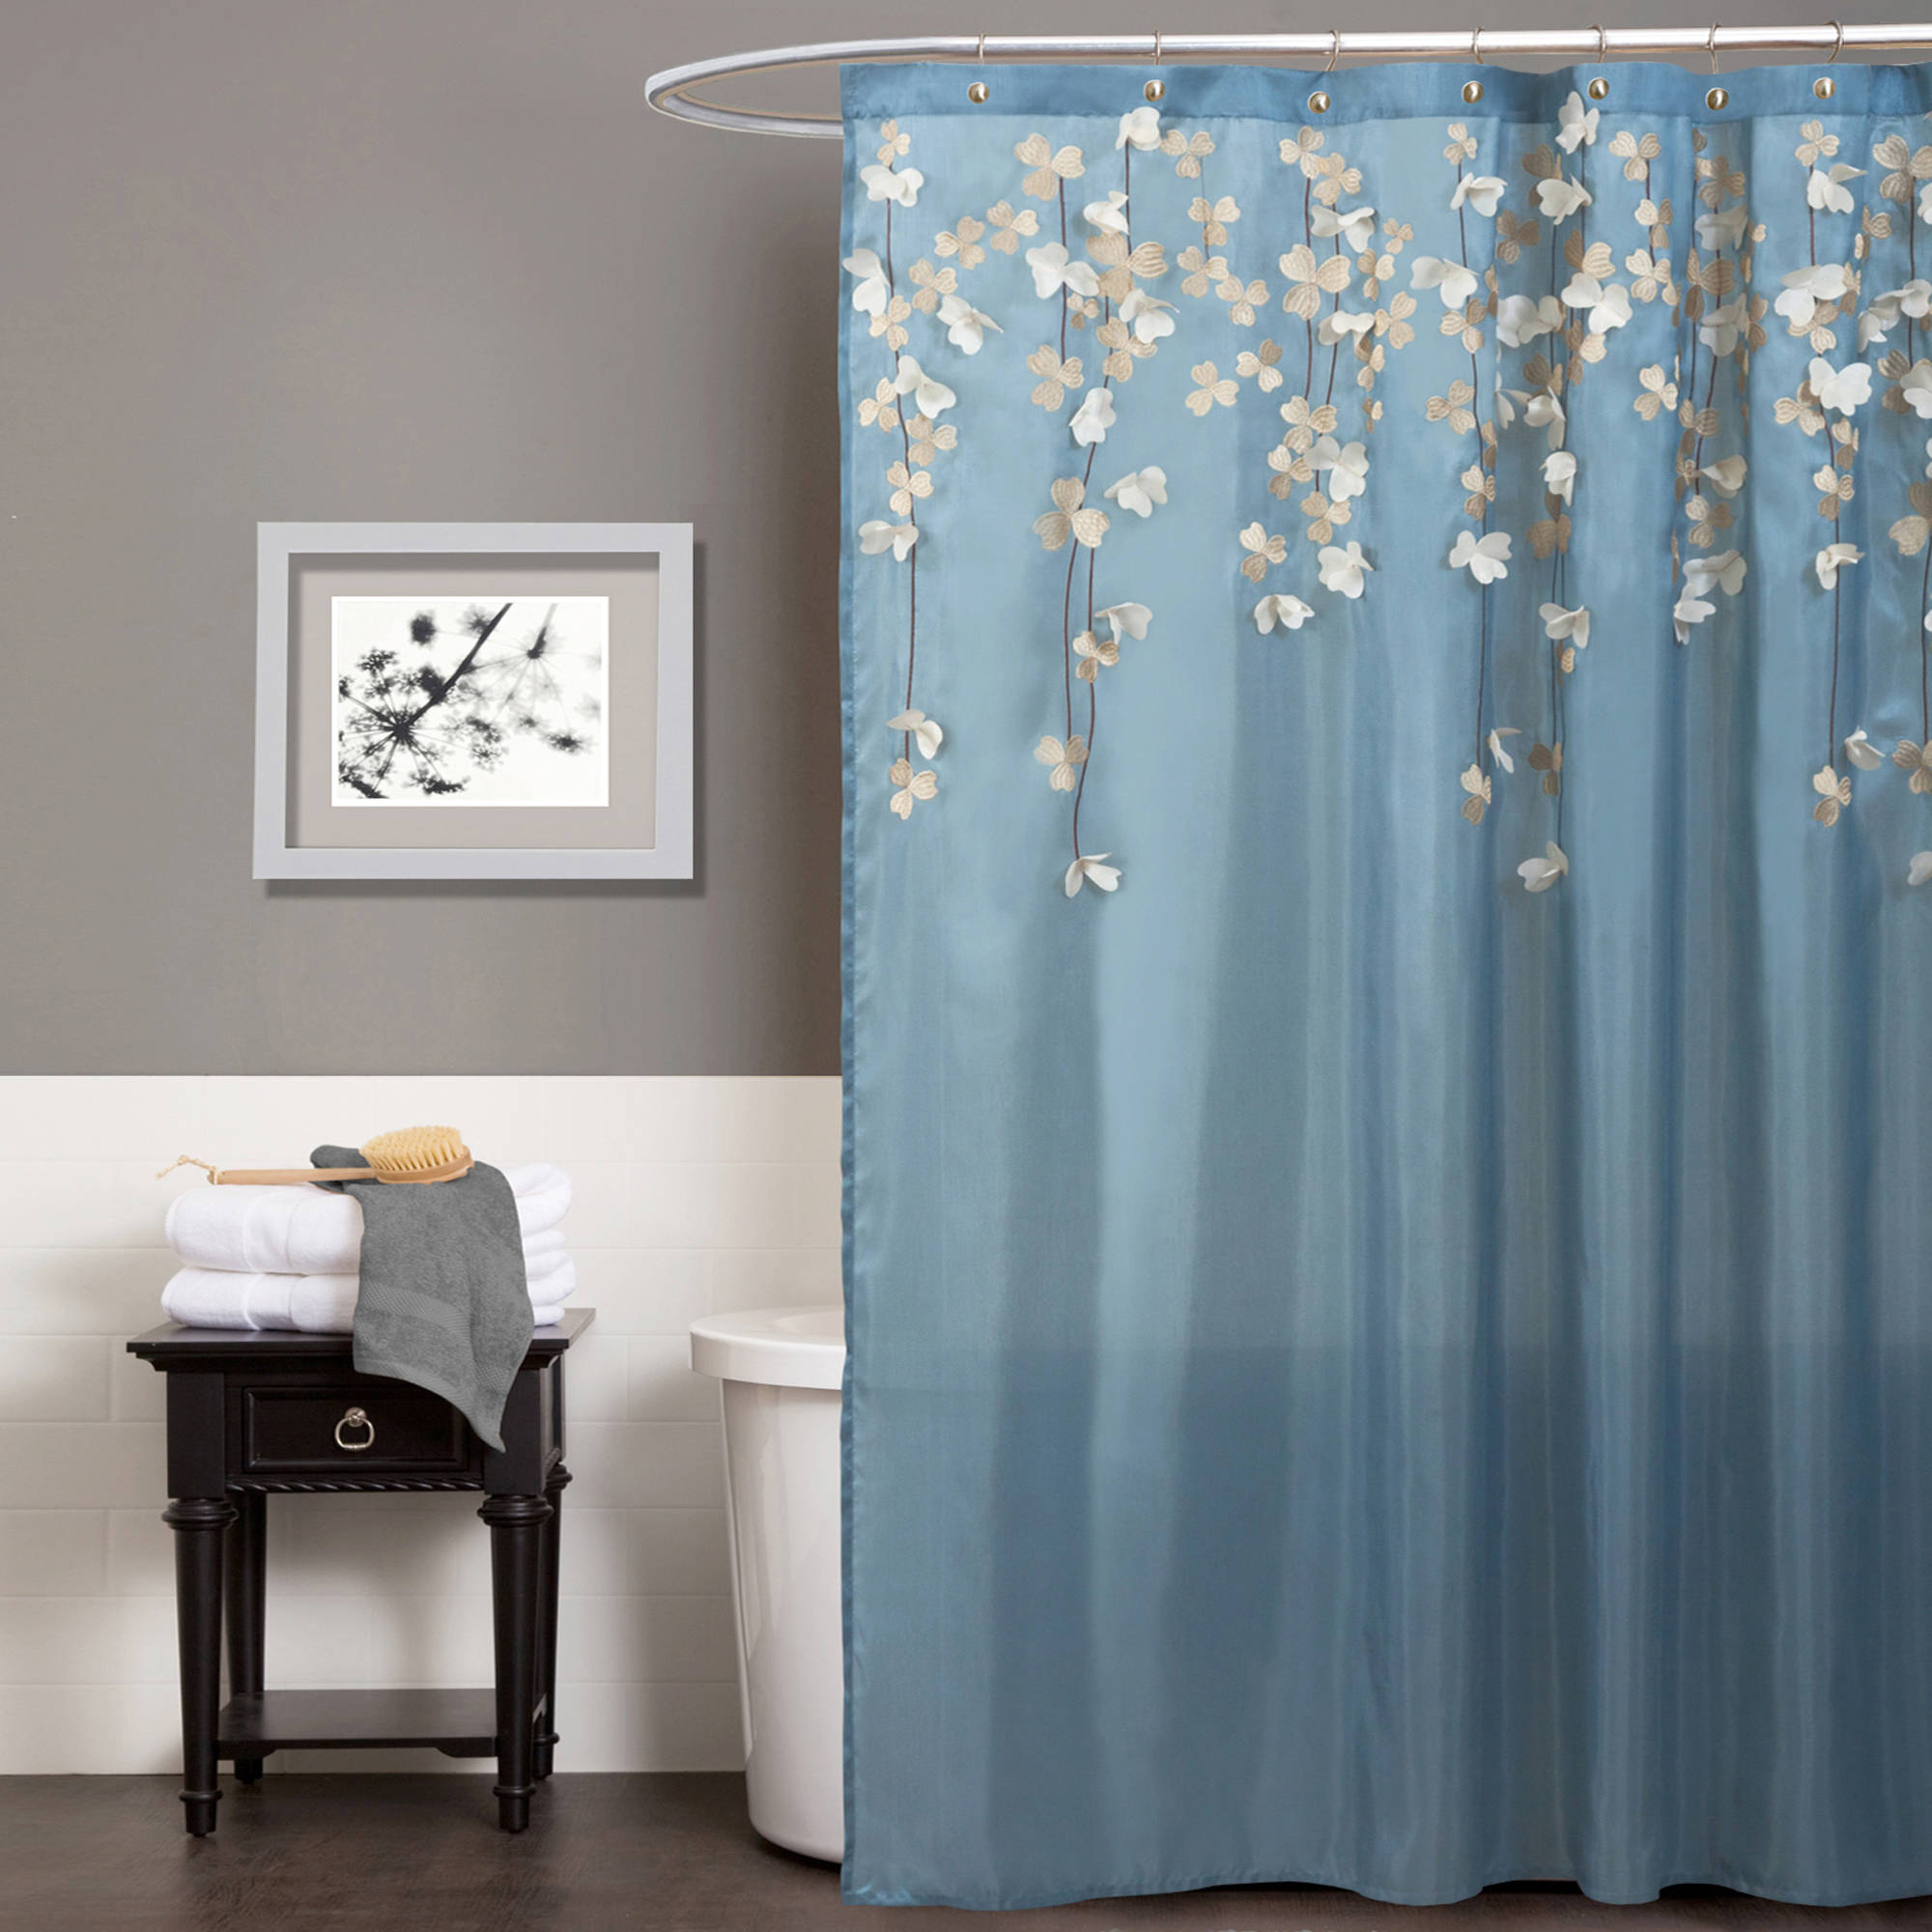 helena gold set soft hs web lily curtains and blue floral curtain bedding bluebell at springfield co bedeck